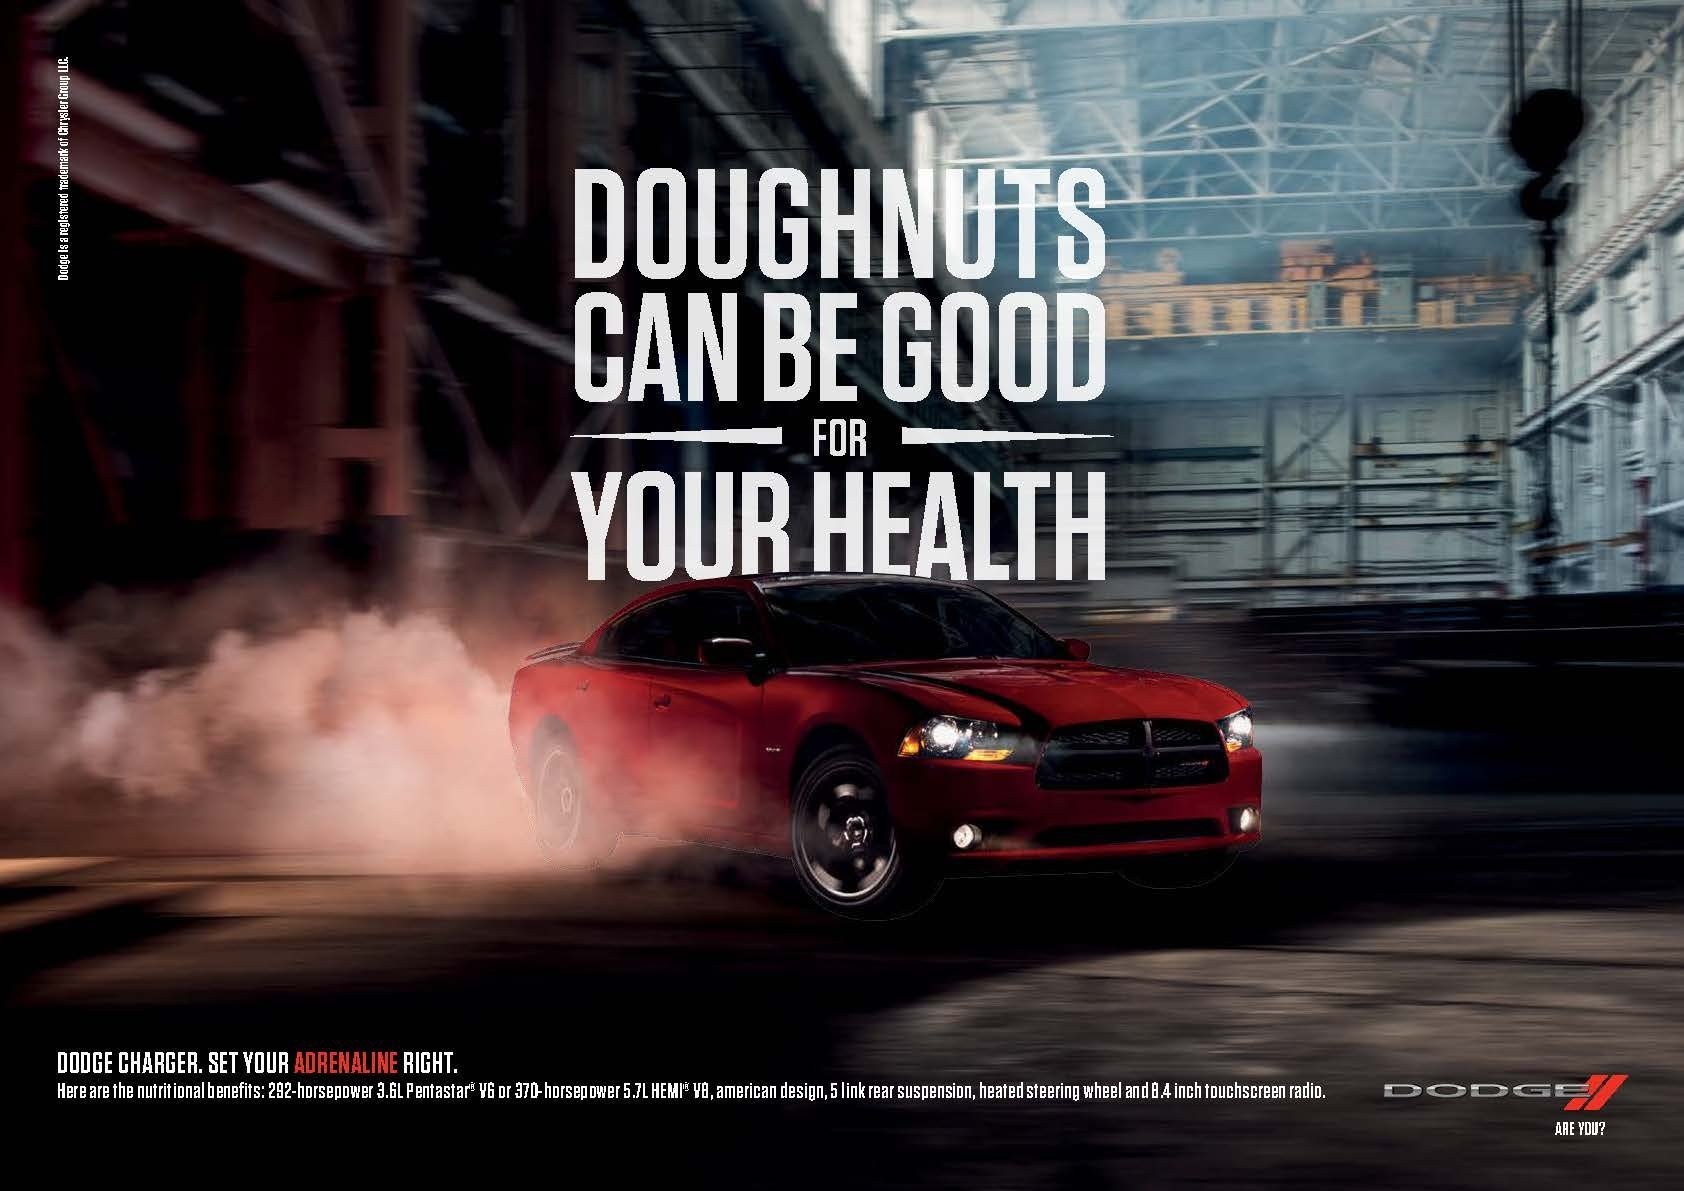 low_DODGE_Charger Doughnuts_spread.jpg